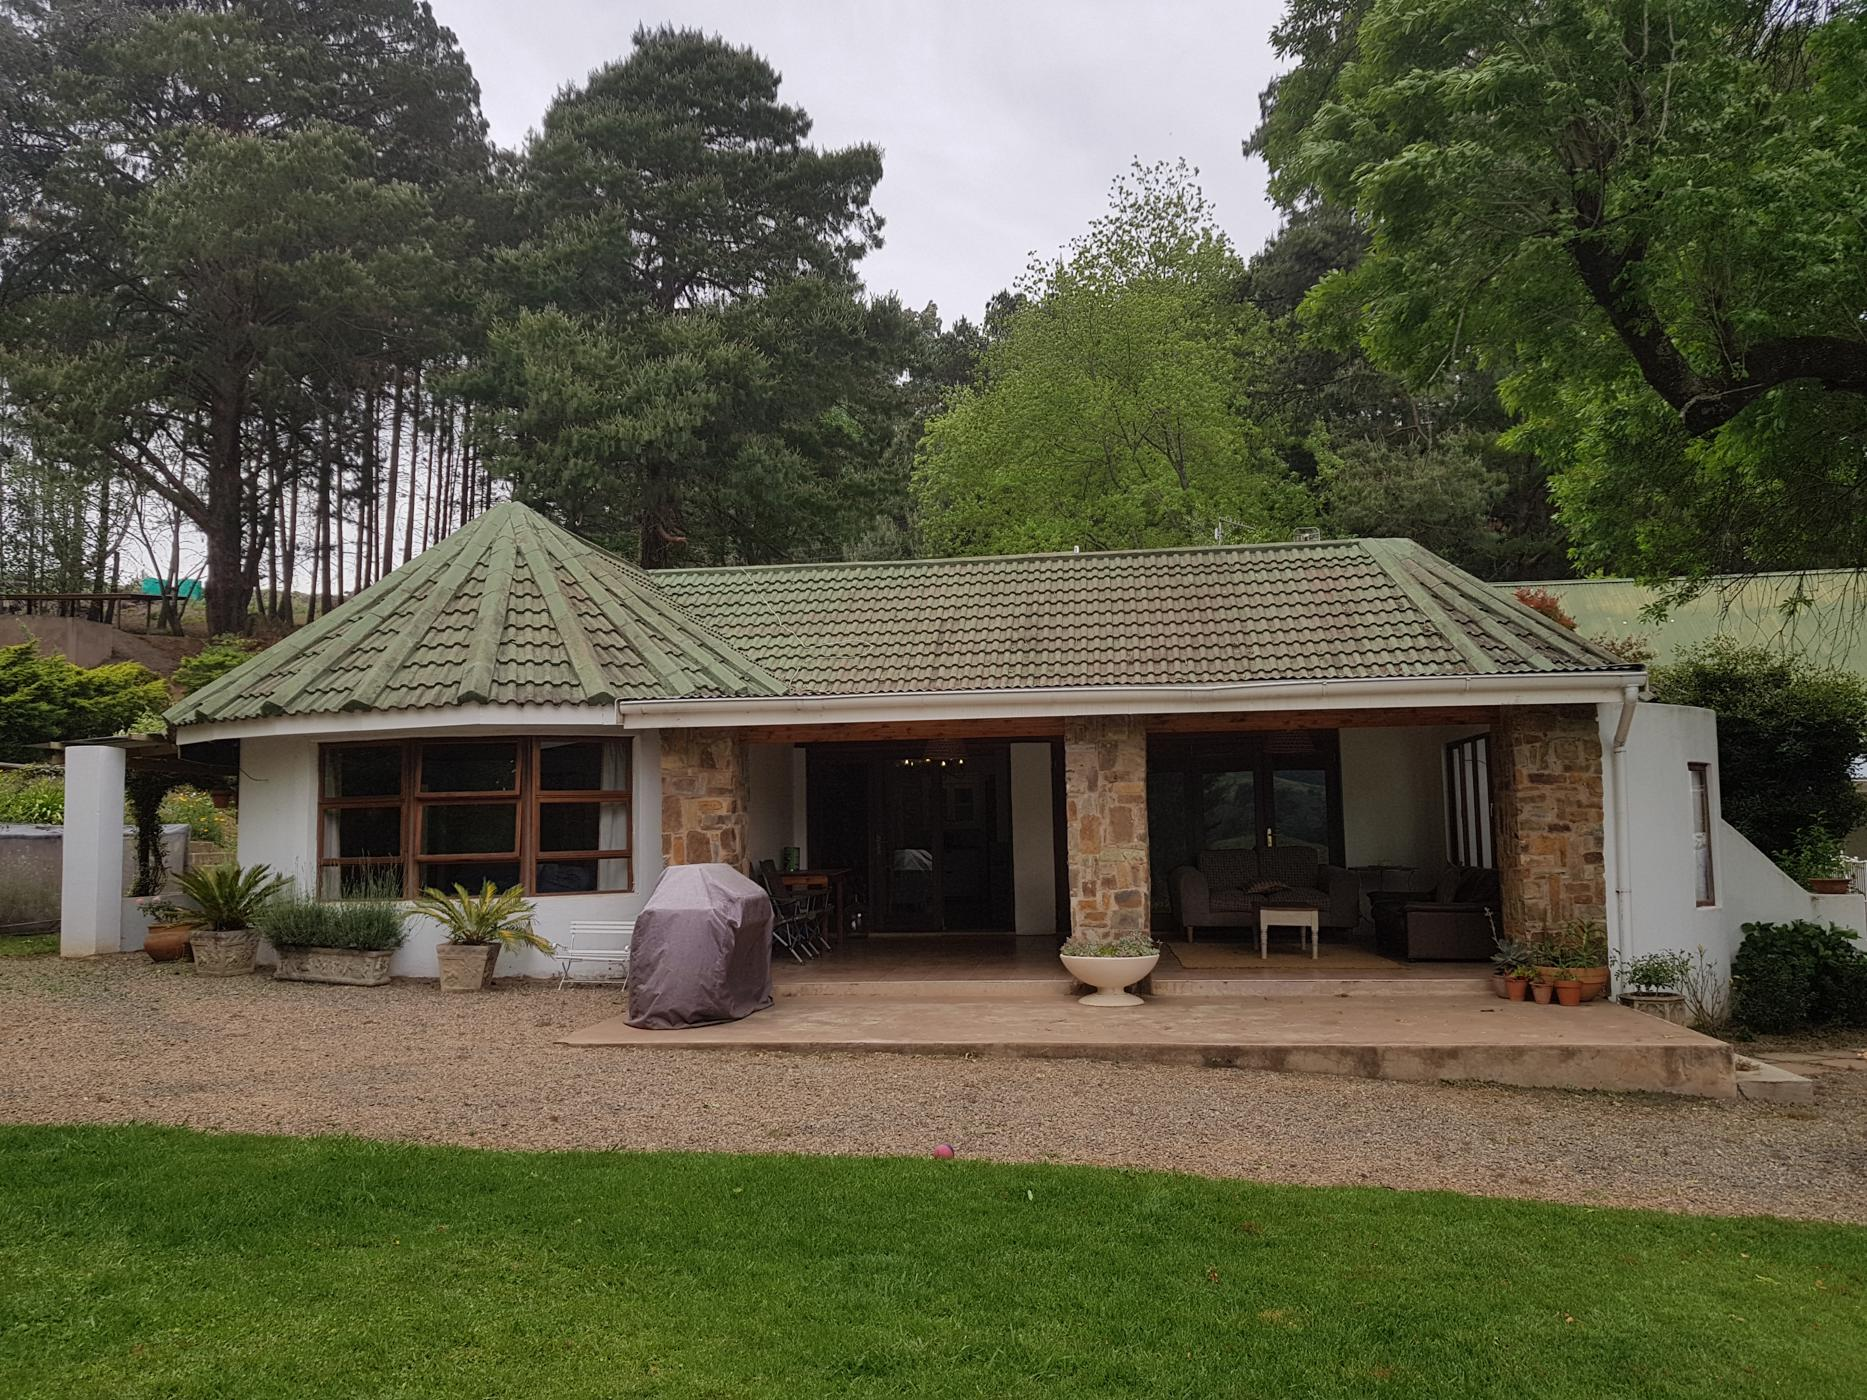 https://listing.pamgolding.co.za/images/properties/201901/1256089/H/1256089_H_17.jpg